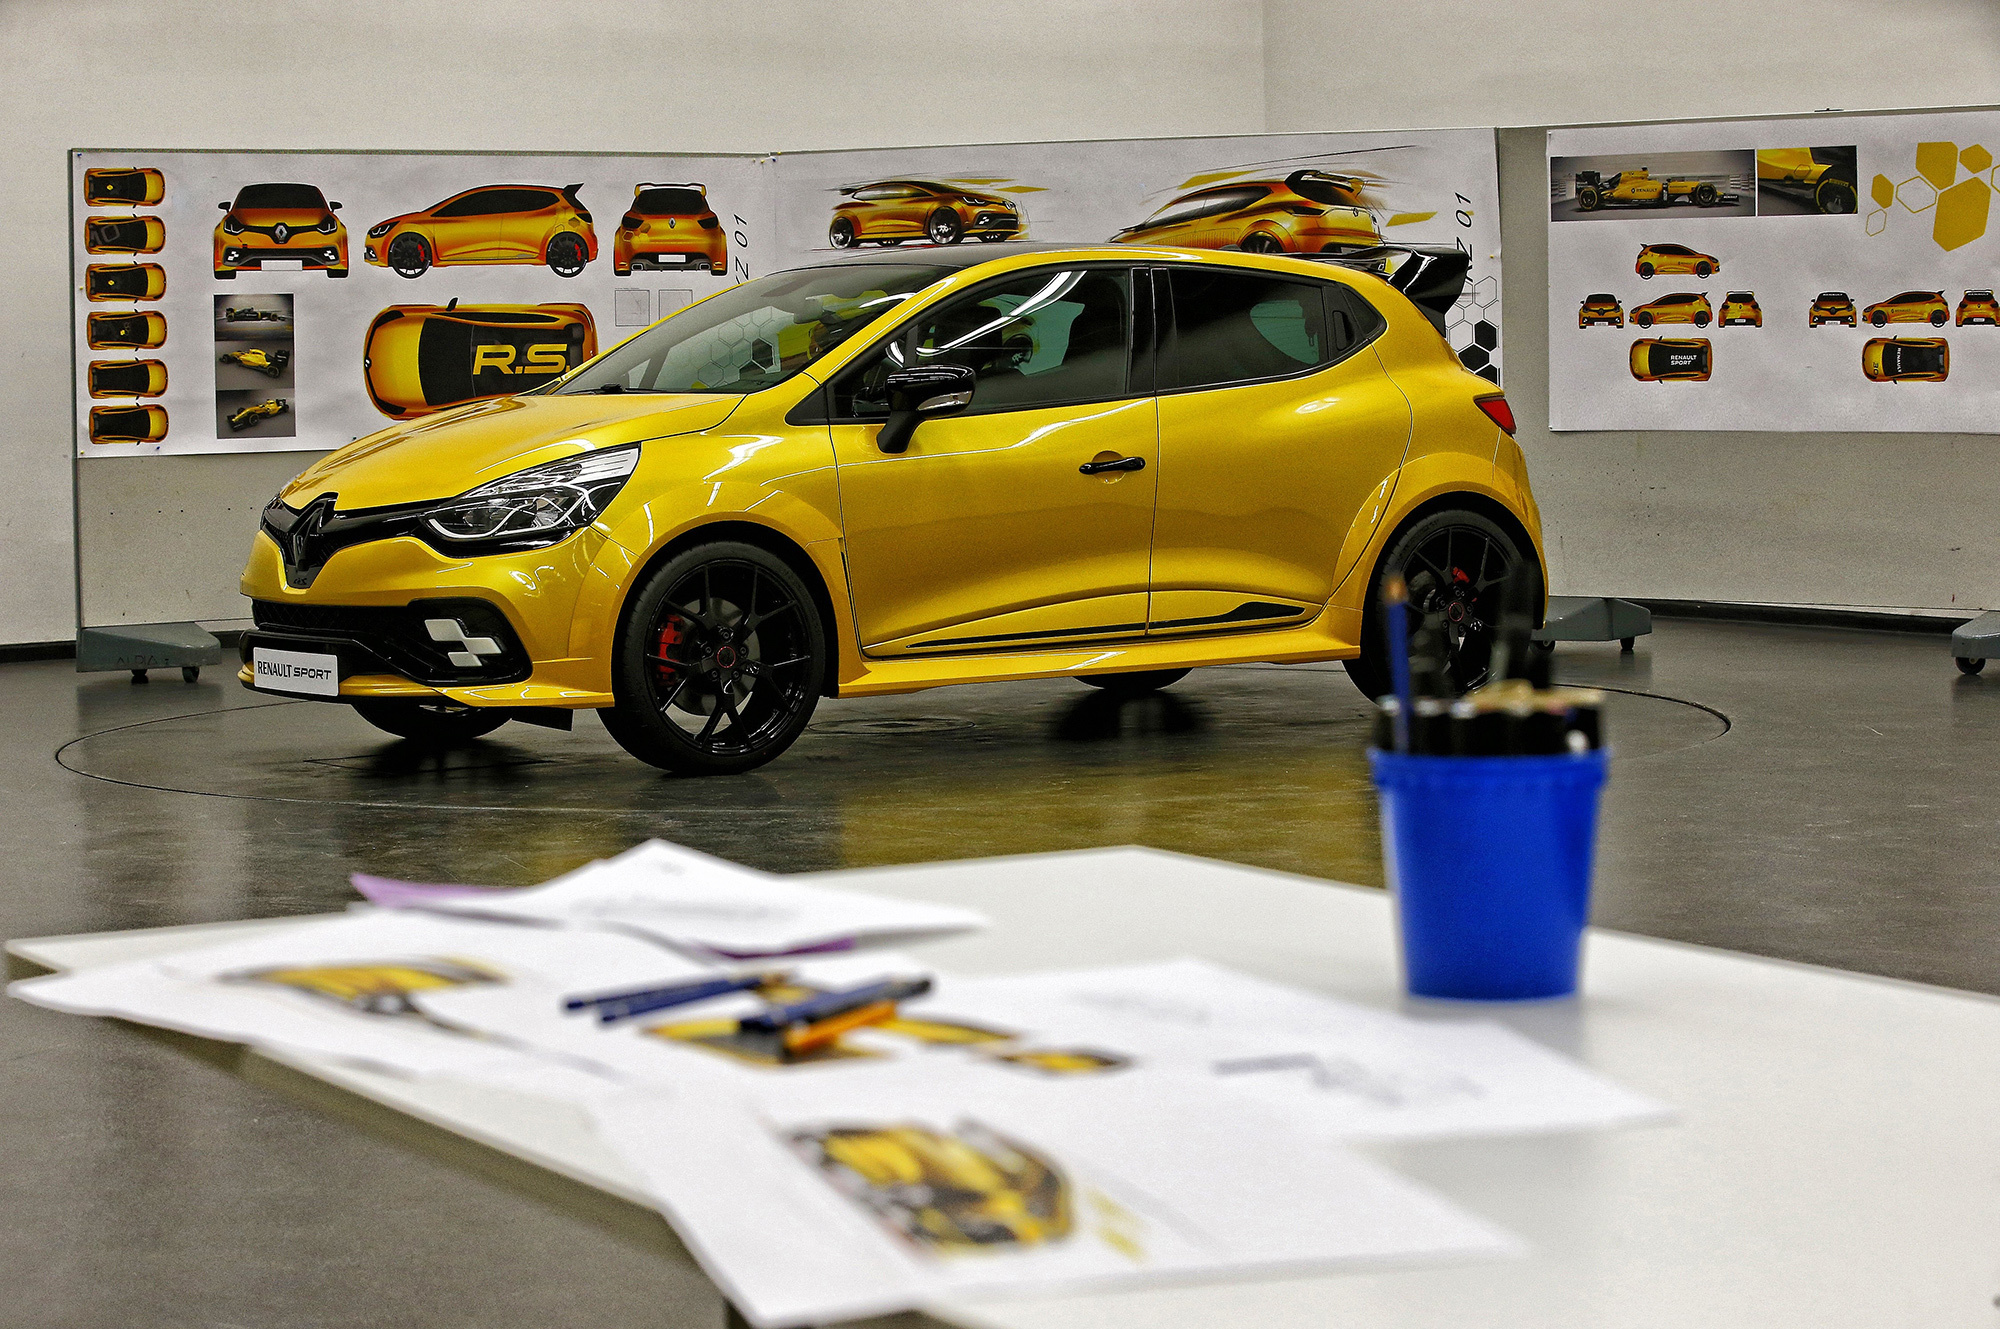 Renault Clio RS Wallpapers